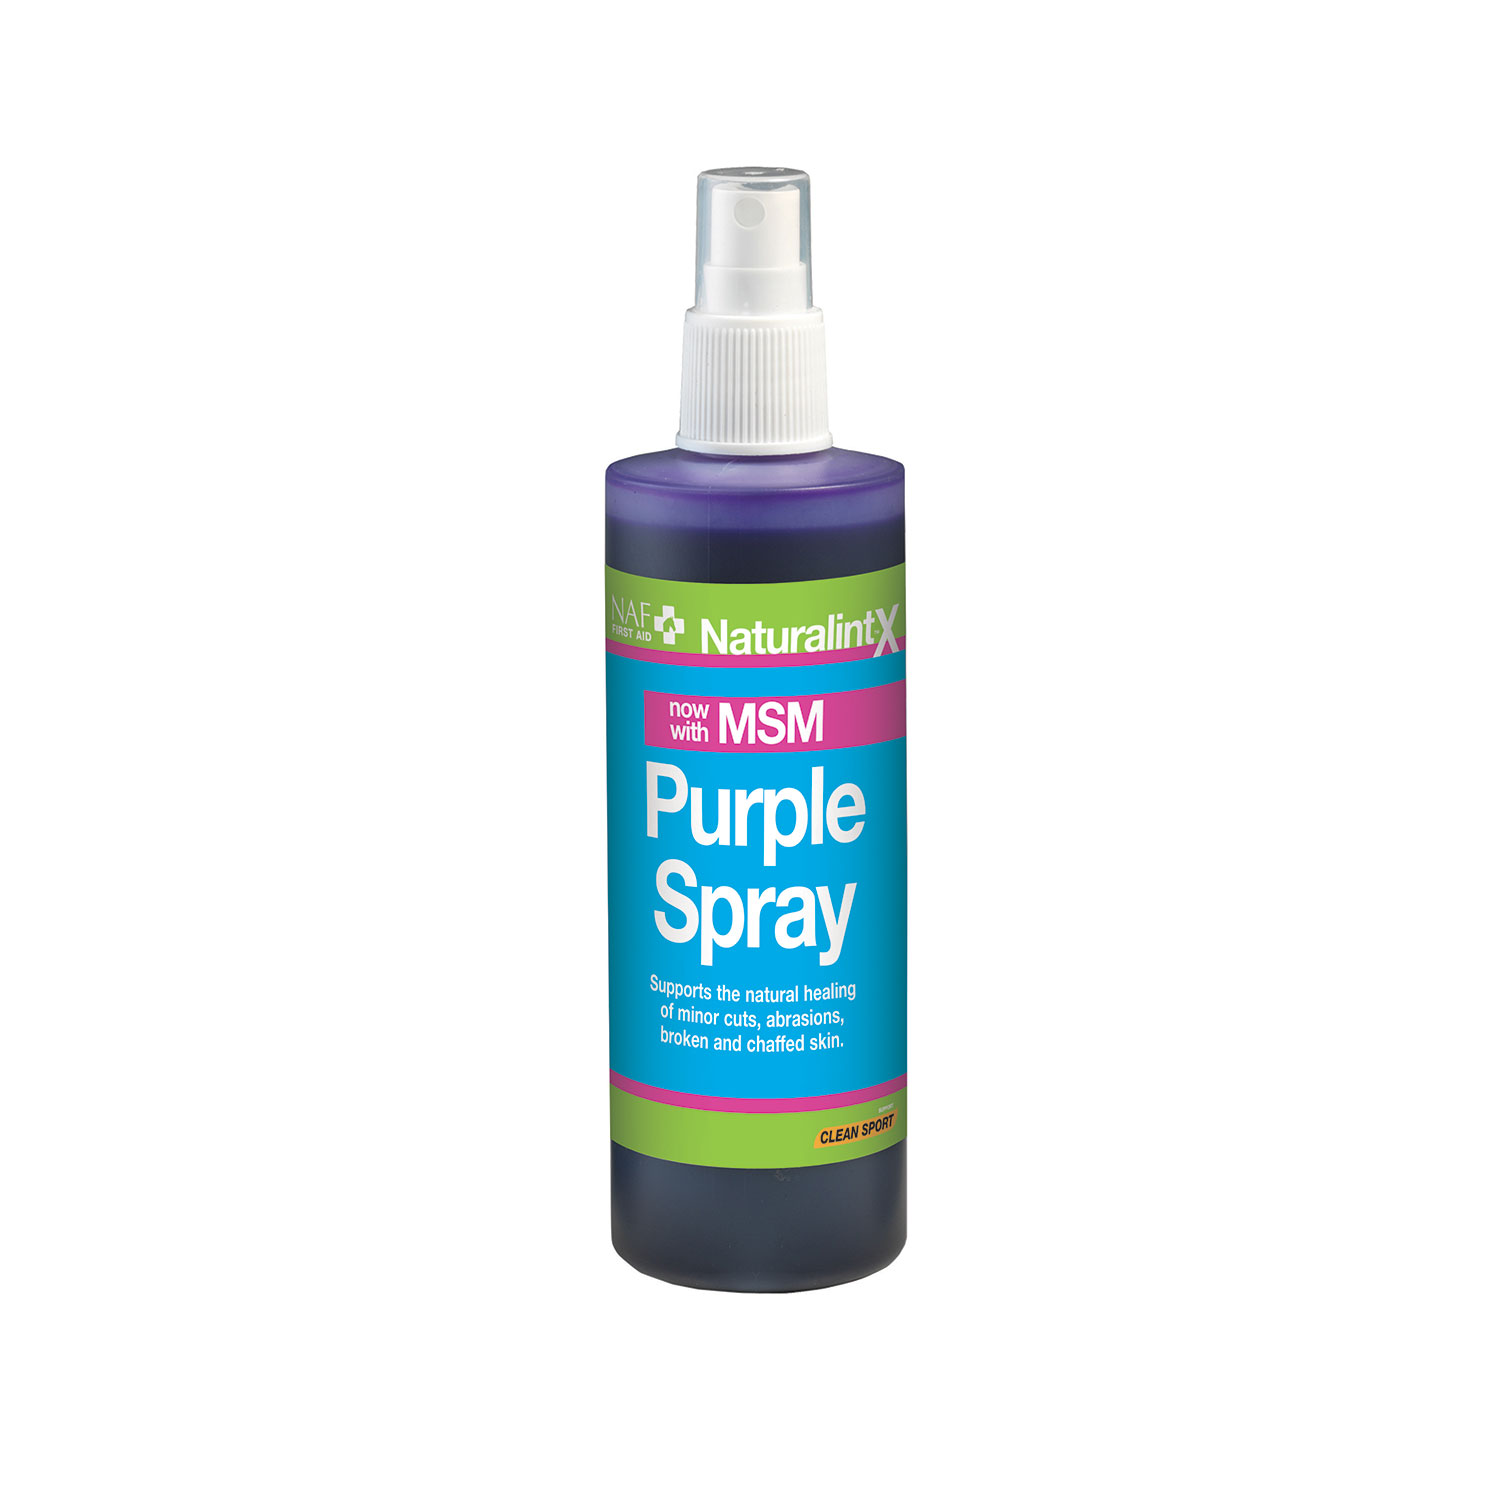 NaturalintX Aloe Vera Purple Spray